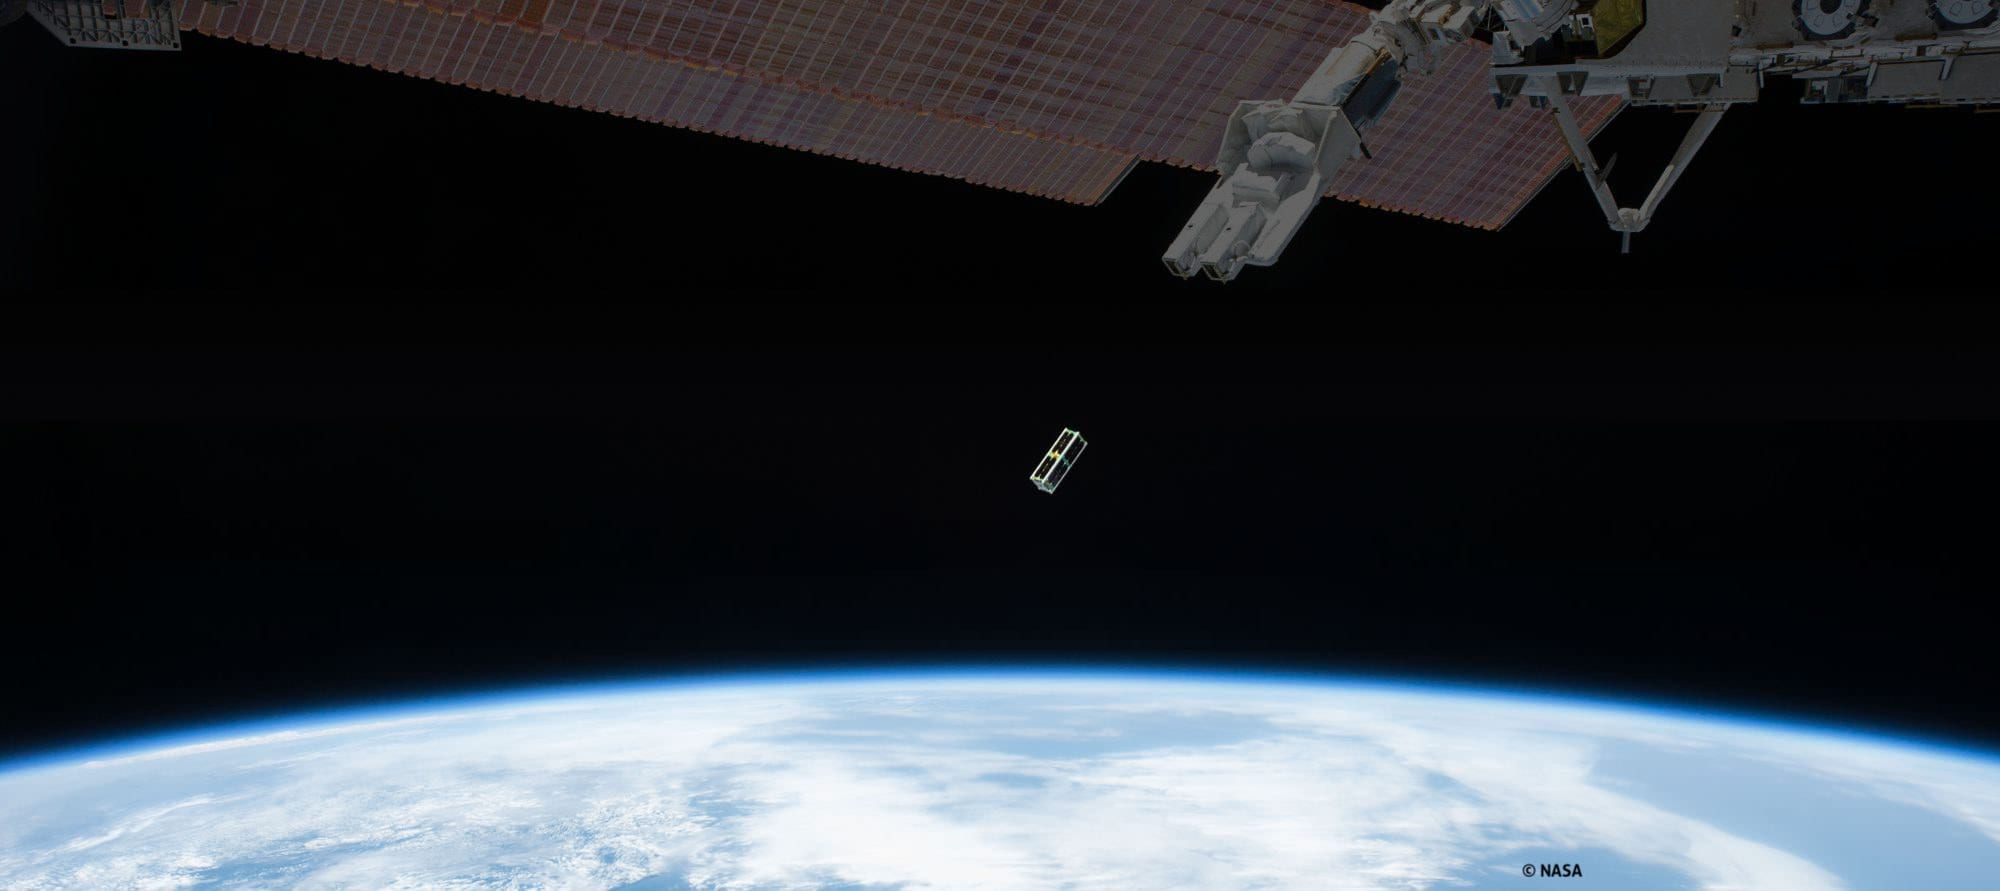 Launch of SERPENS nanosatellite from the International Space Station (ISS) - edited